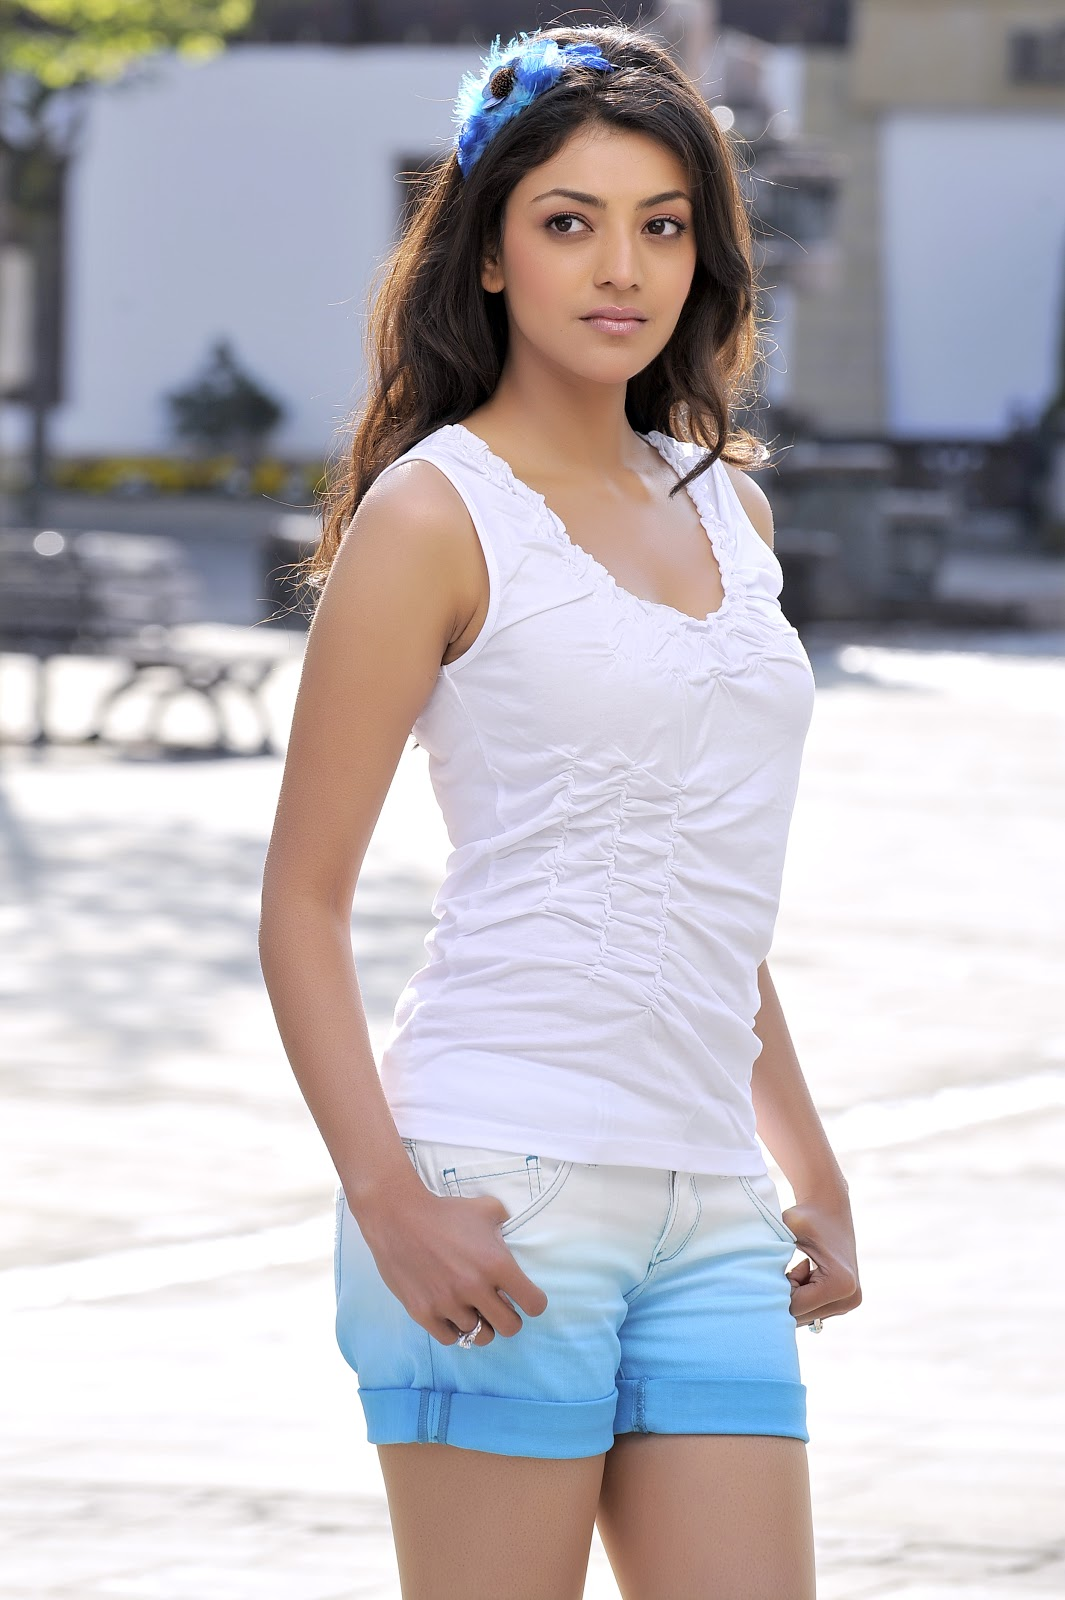 kajal agarwal hot hd wallpapers 1366x768 - excellent hd quality of